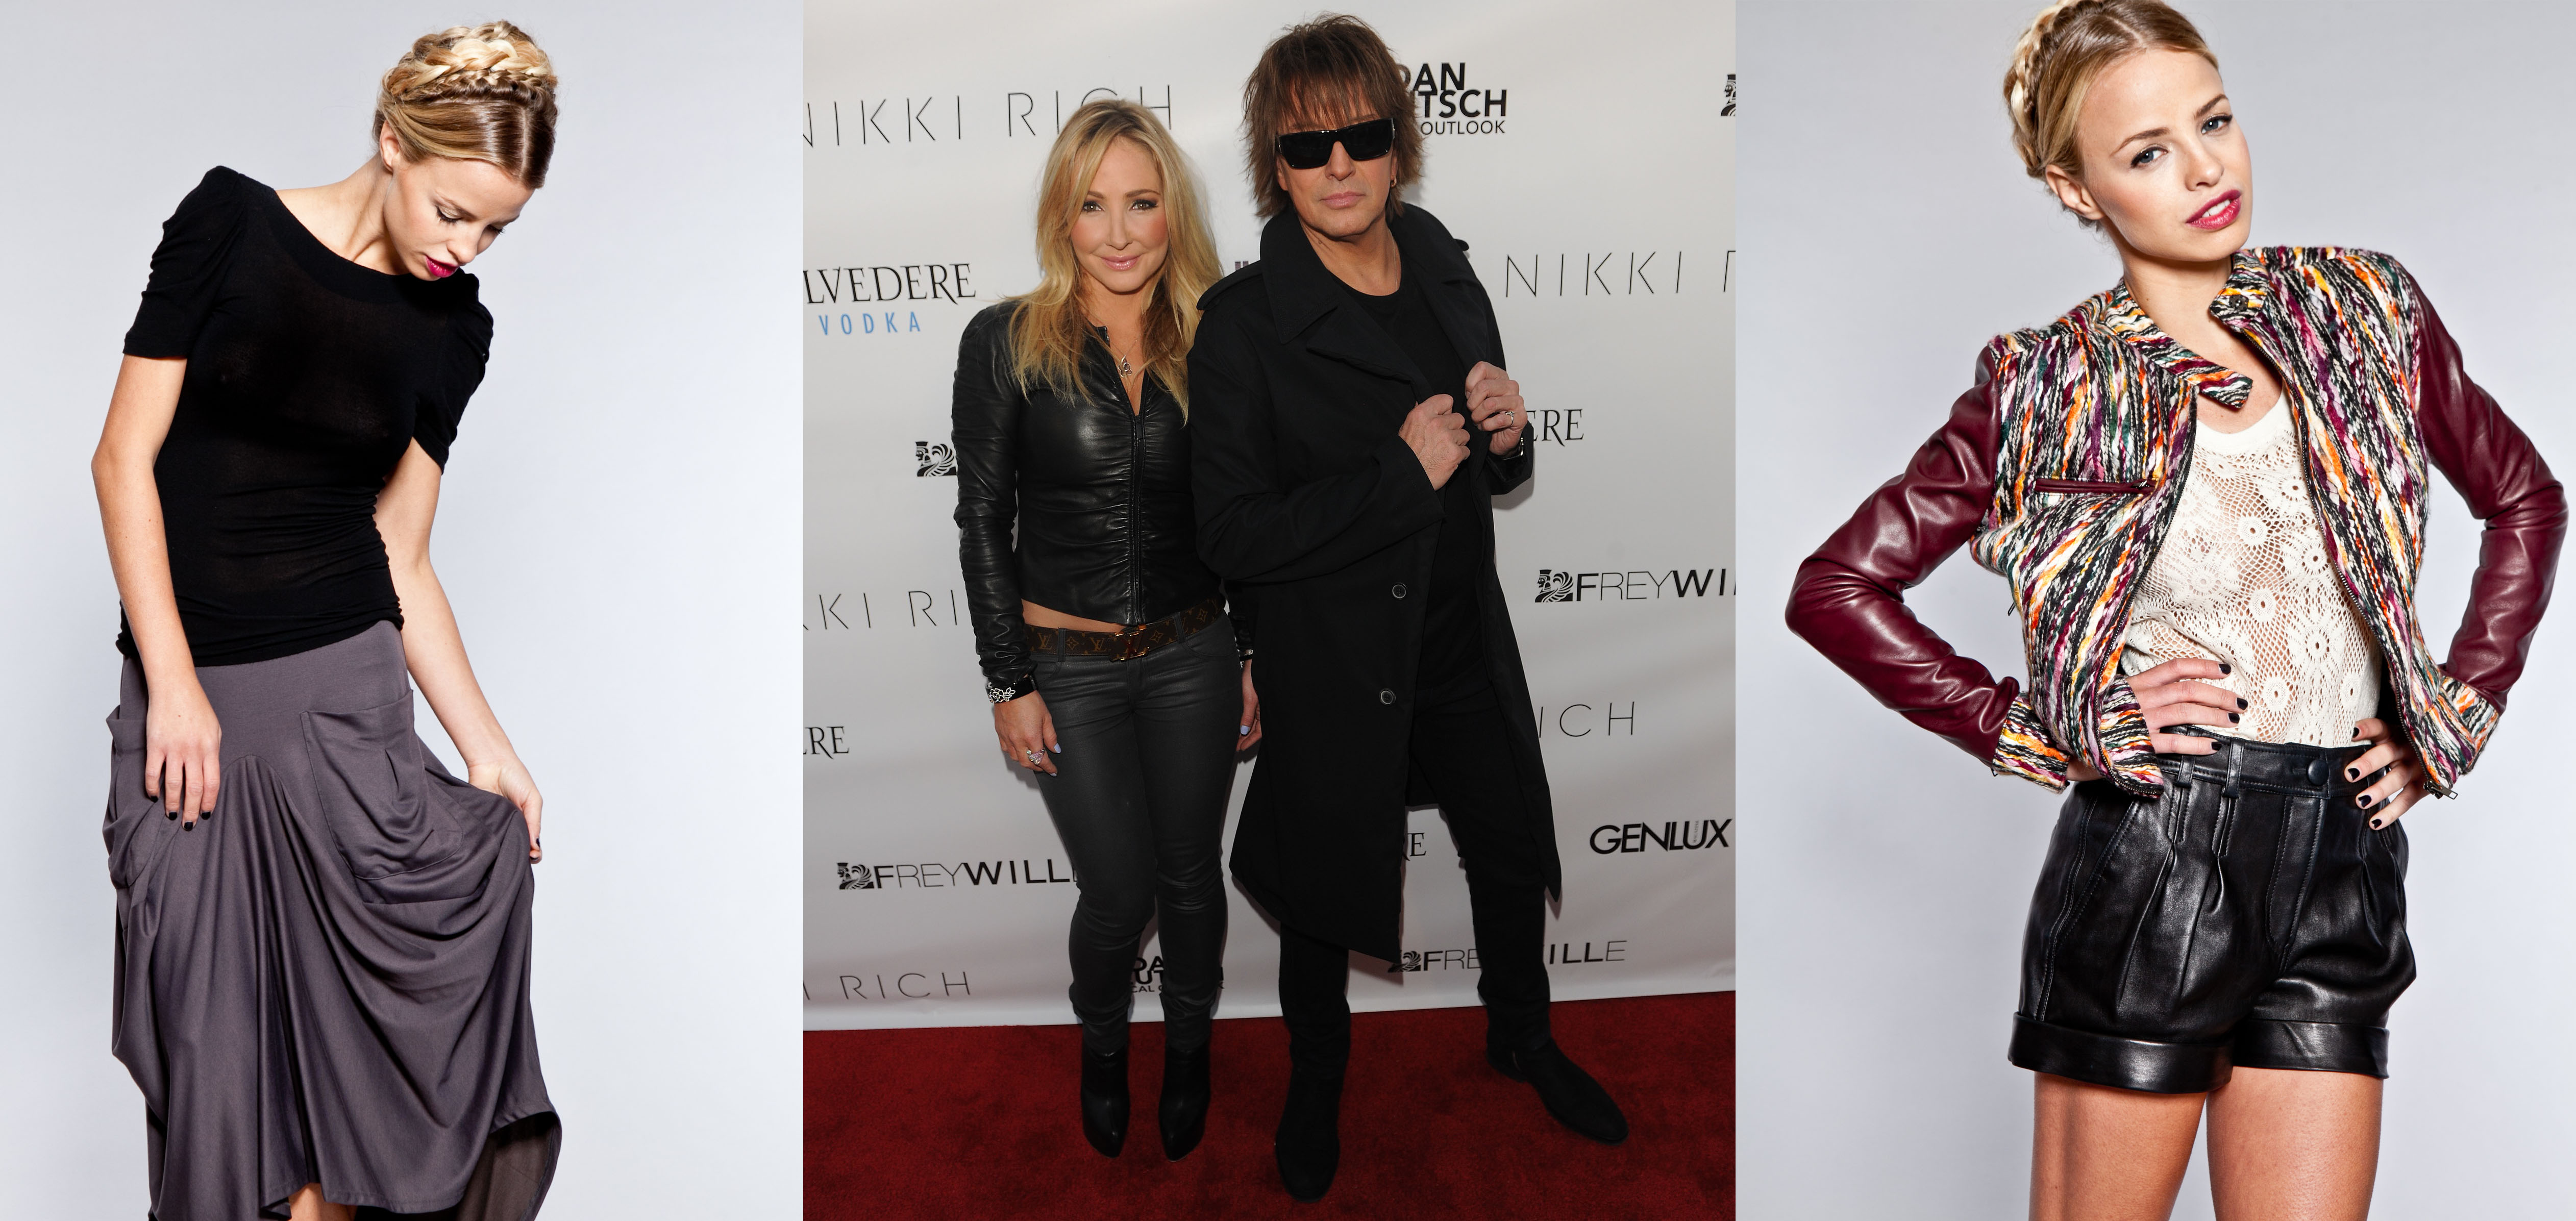 Richie Sambora Clothing Richie Sambora And Fashion